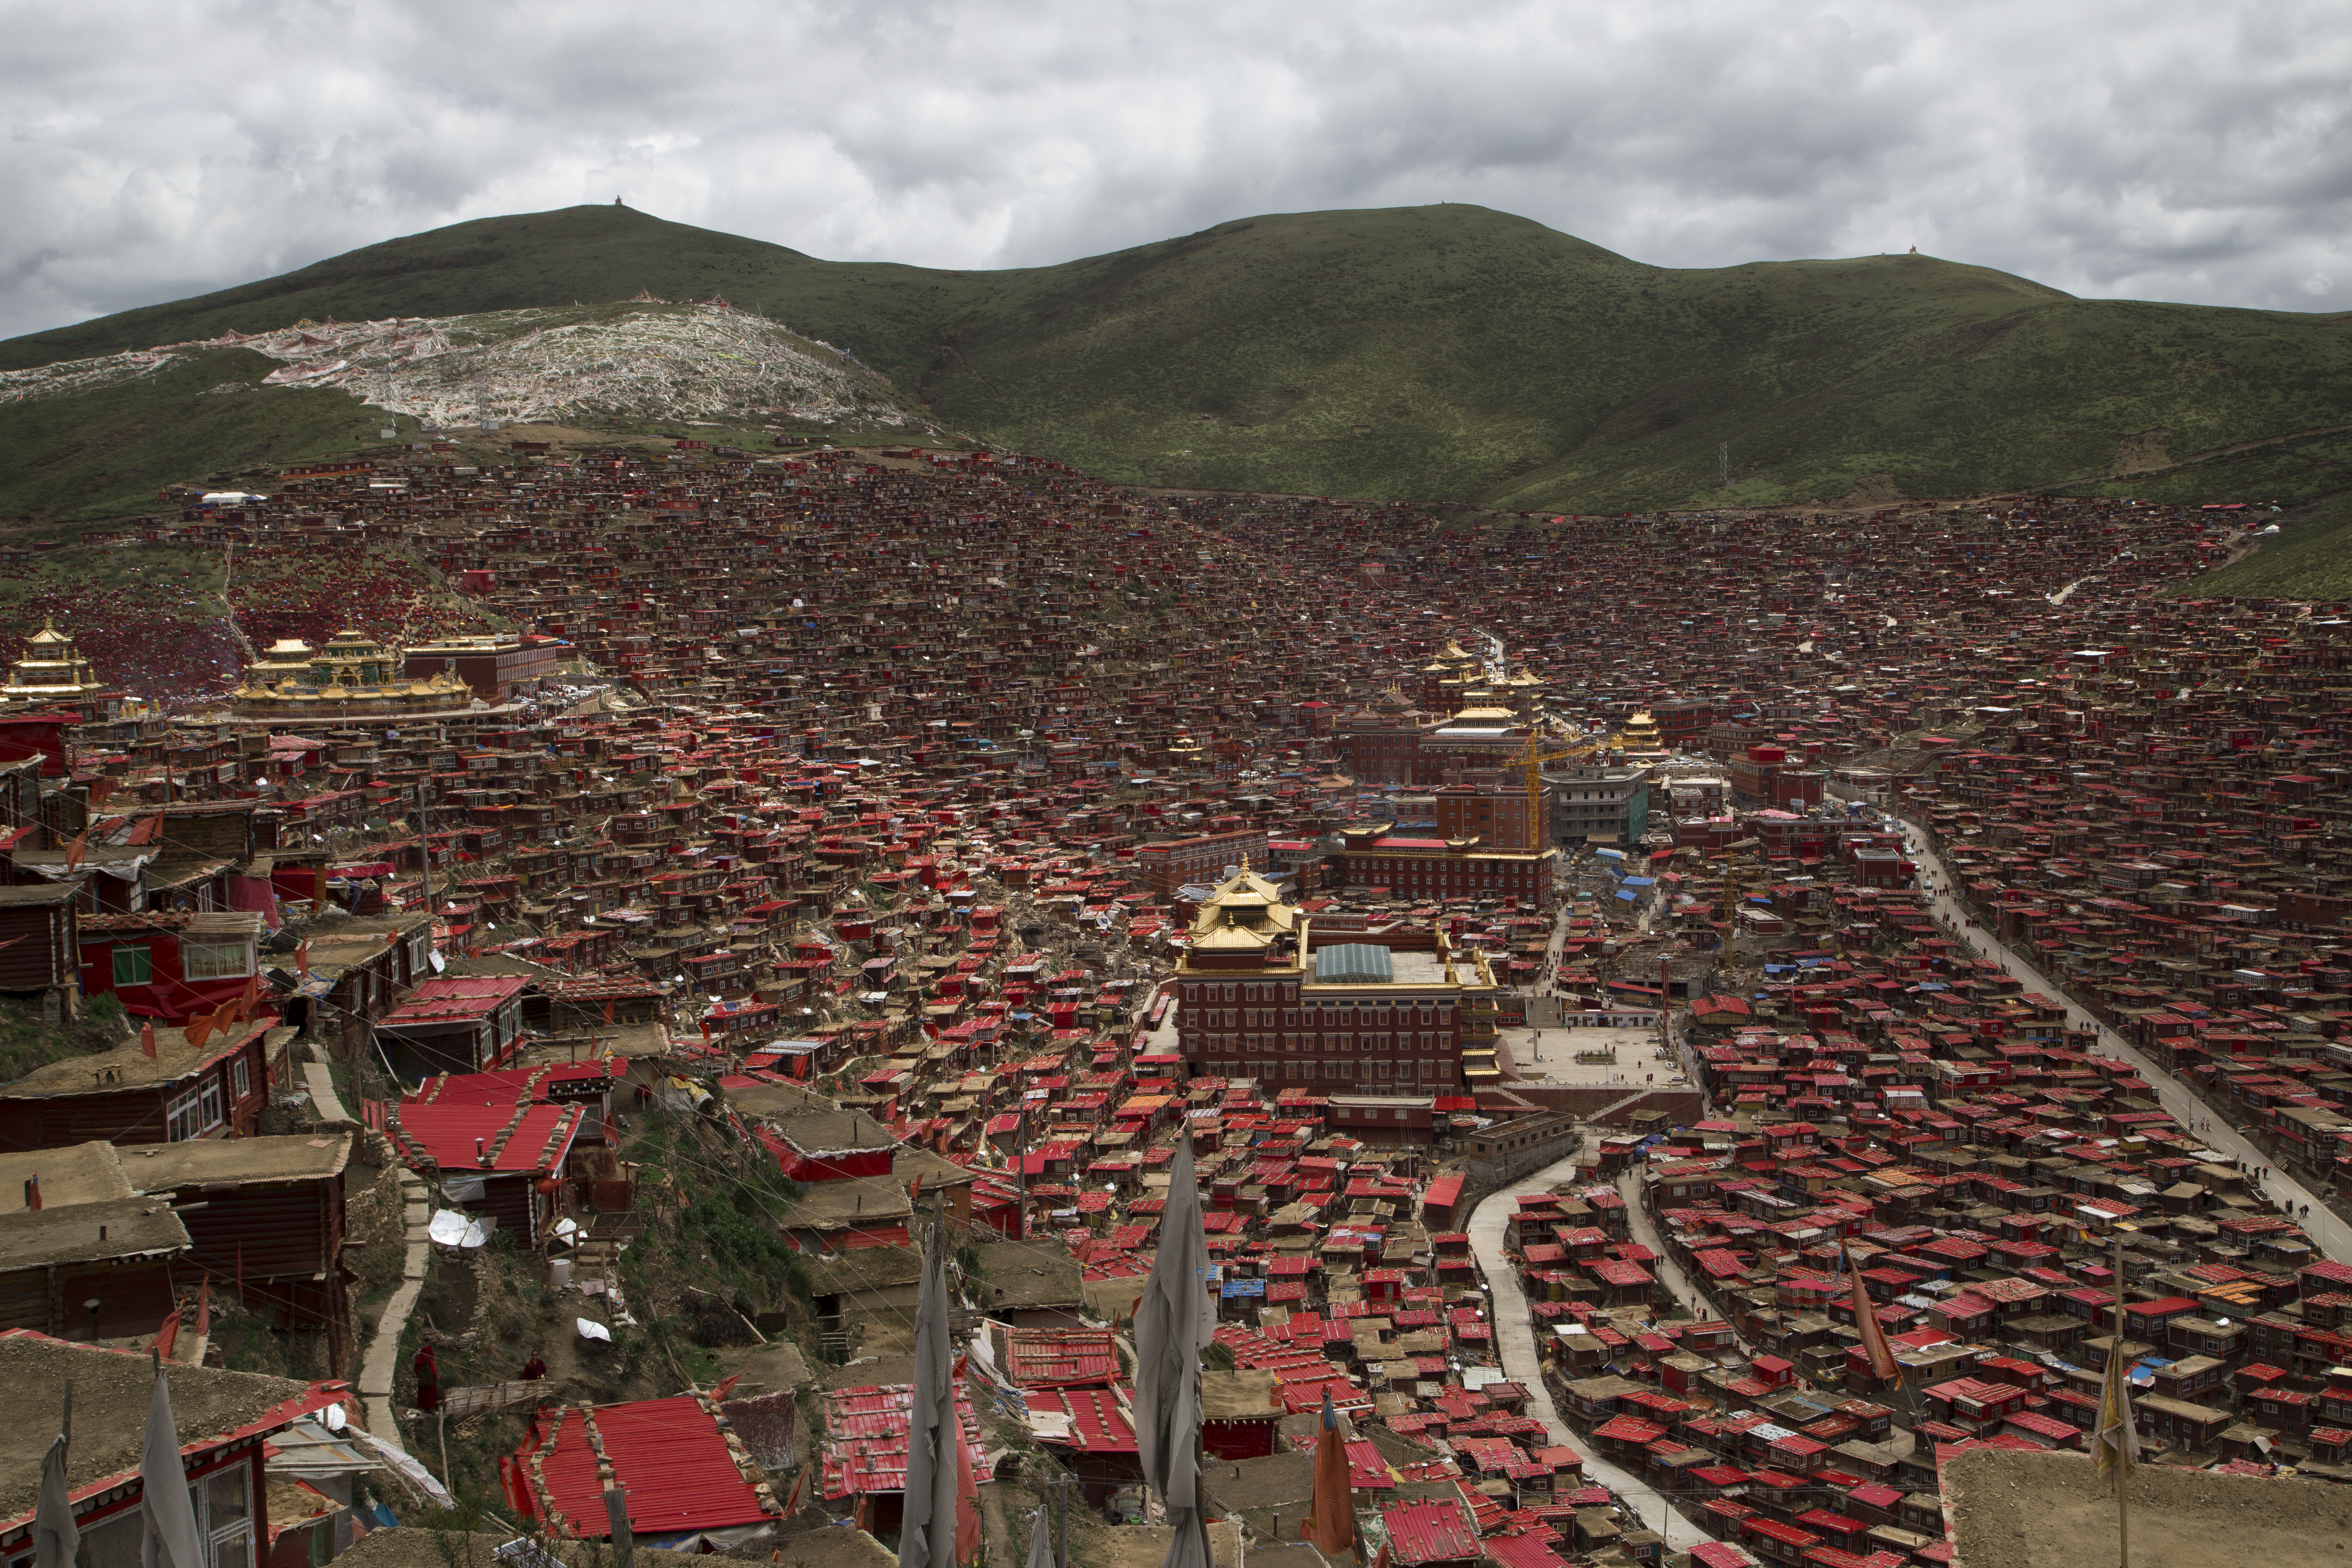 https://upload.wikimedia.org/wikipedia/commons/8/83/Larung_Gar_Five_Sciences_Buddhist_Academy_2014_(14660043083).jpg